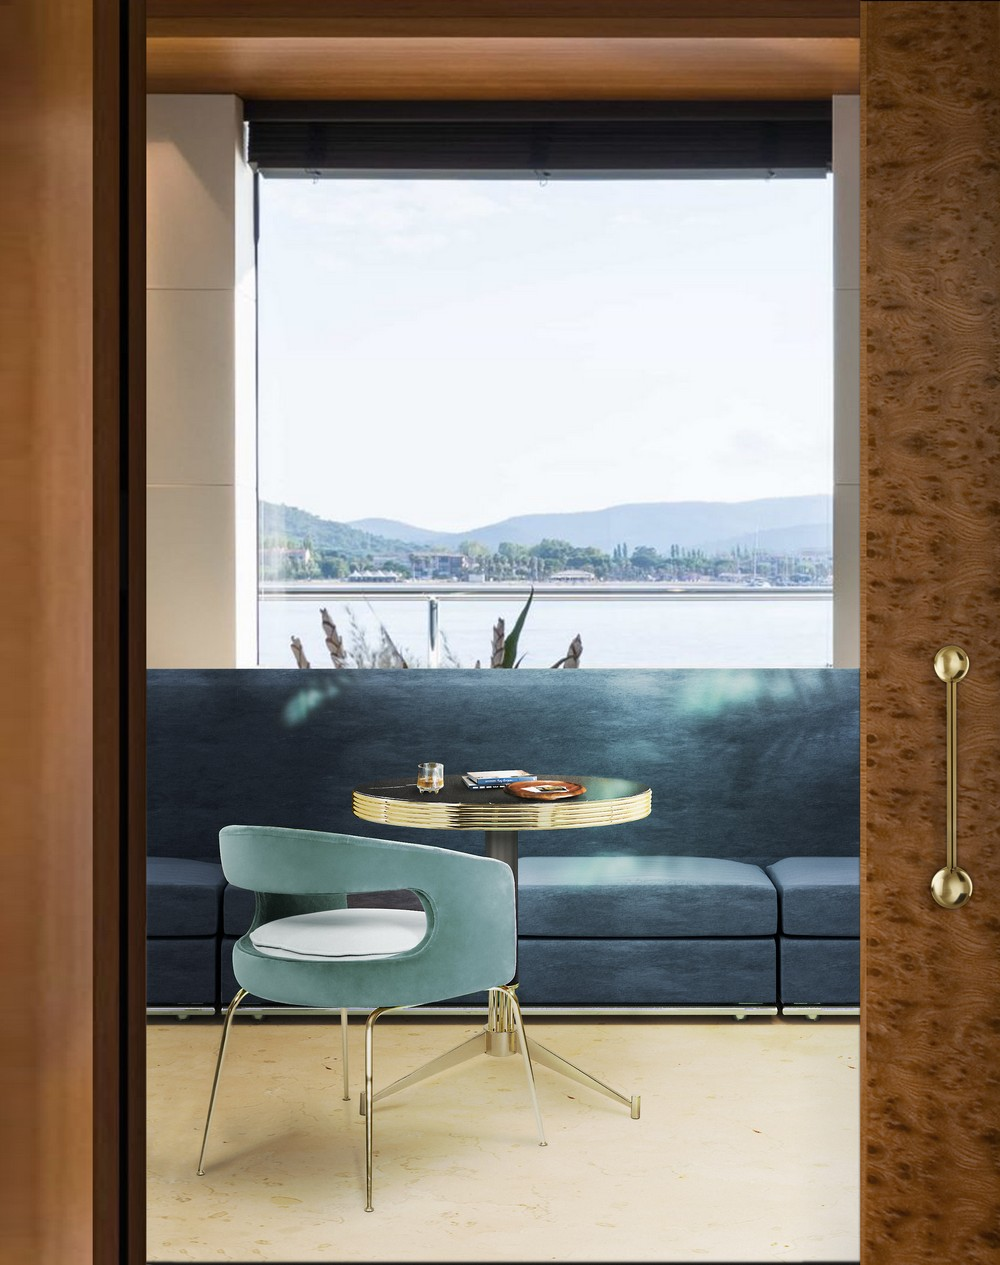 Add a Subtle Change to Your Luxury Yacht Interior with Deluxe Hardware 4 flibs 2020 FLIBS 2020: What is Happening on the World's Leading Boat Show Add a Subtle Change to Your Luxury Yacht Interior with Deluxe Hardware 4